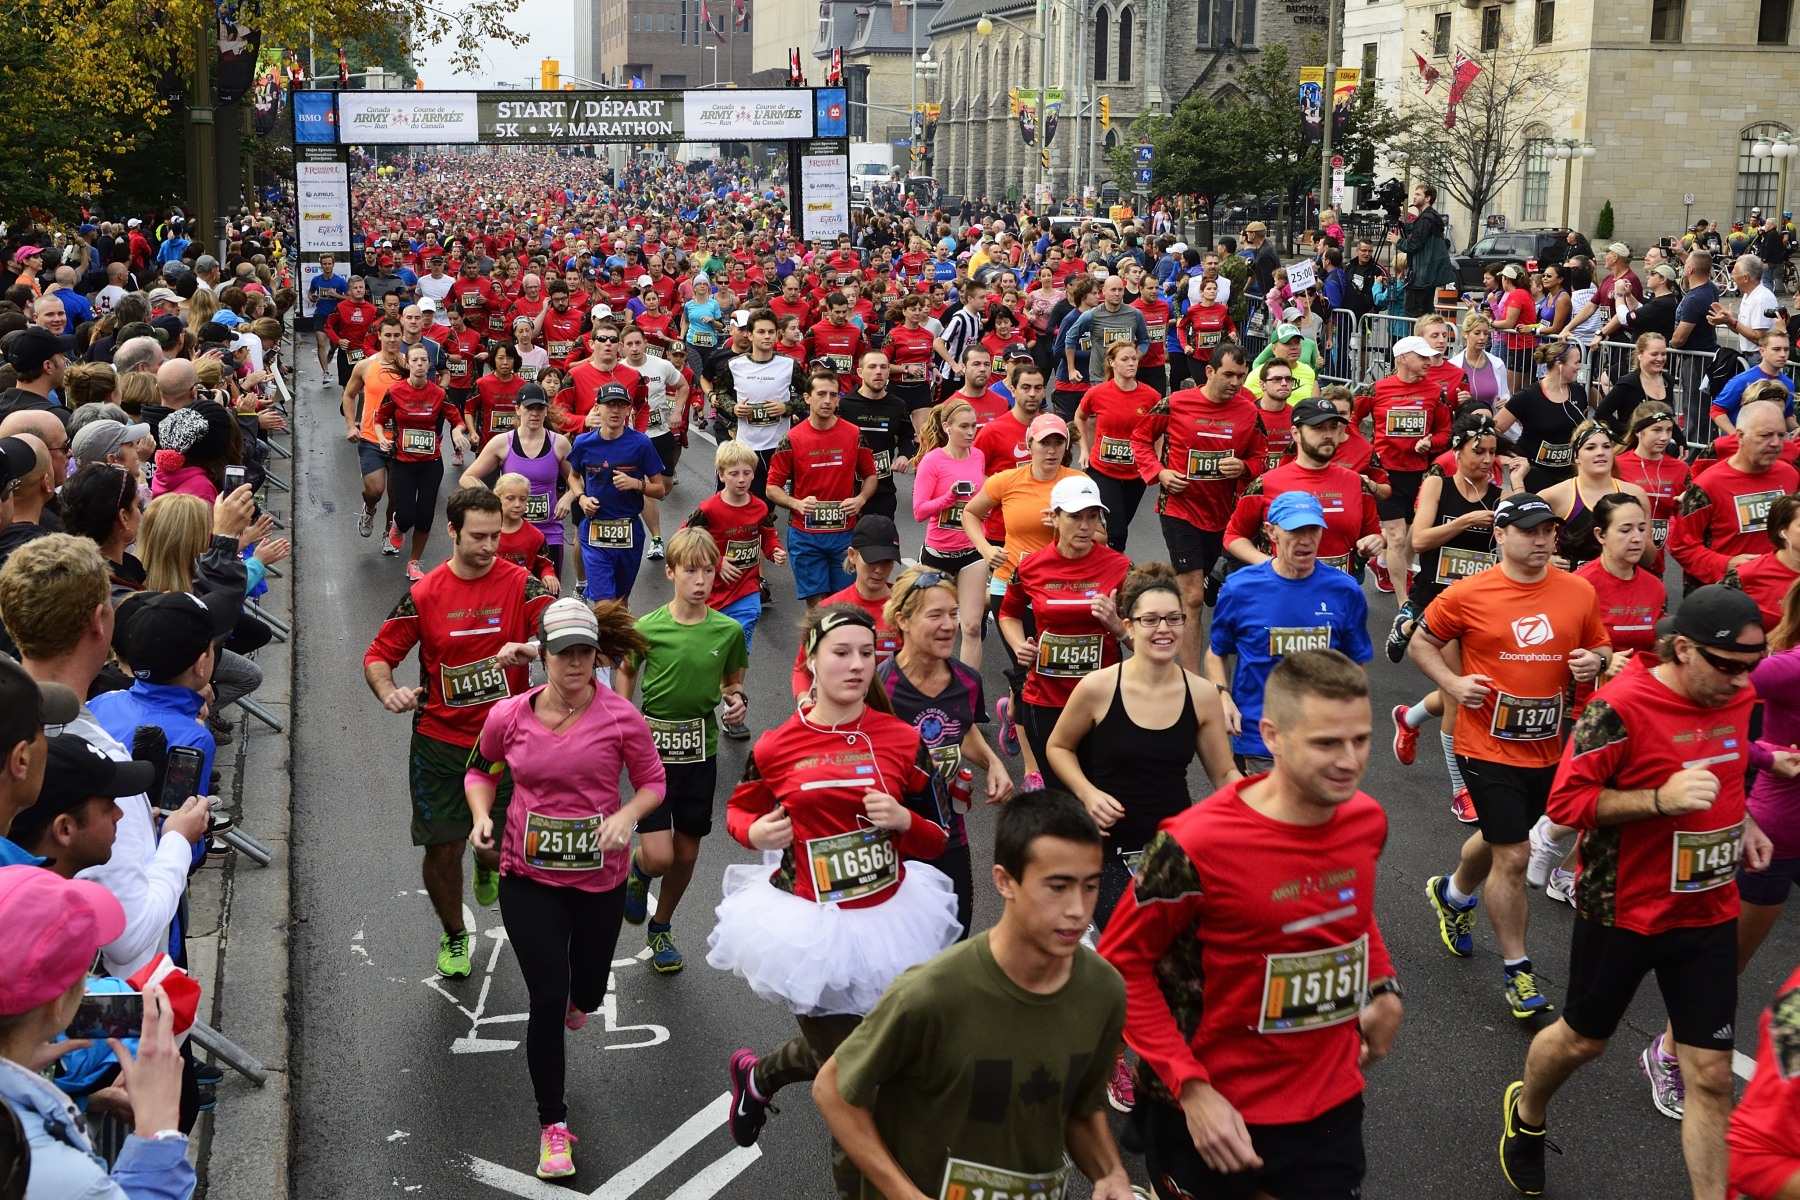 Canada Army Run is a unique running event in which Canadians can run, walk or roll side-by-side with members of the Canadian Armed Forces in half-marathon and five-kilometre events. Fundraising efforts and proceeds benefit Soldier On and the Military Families Fund.